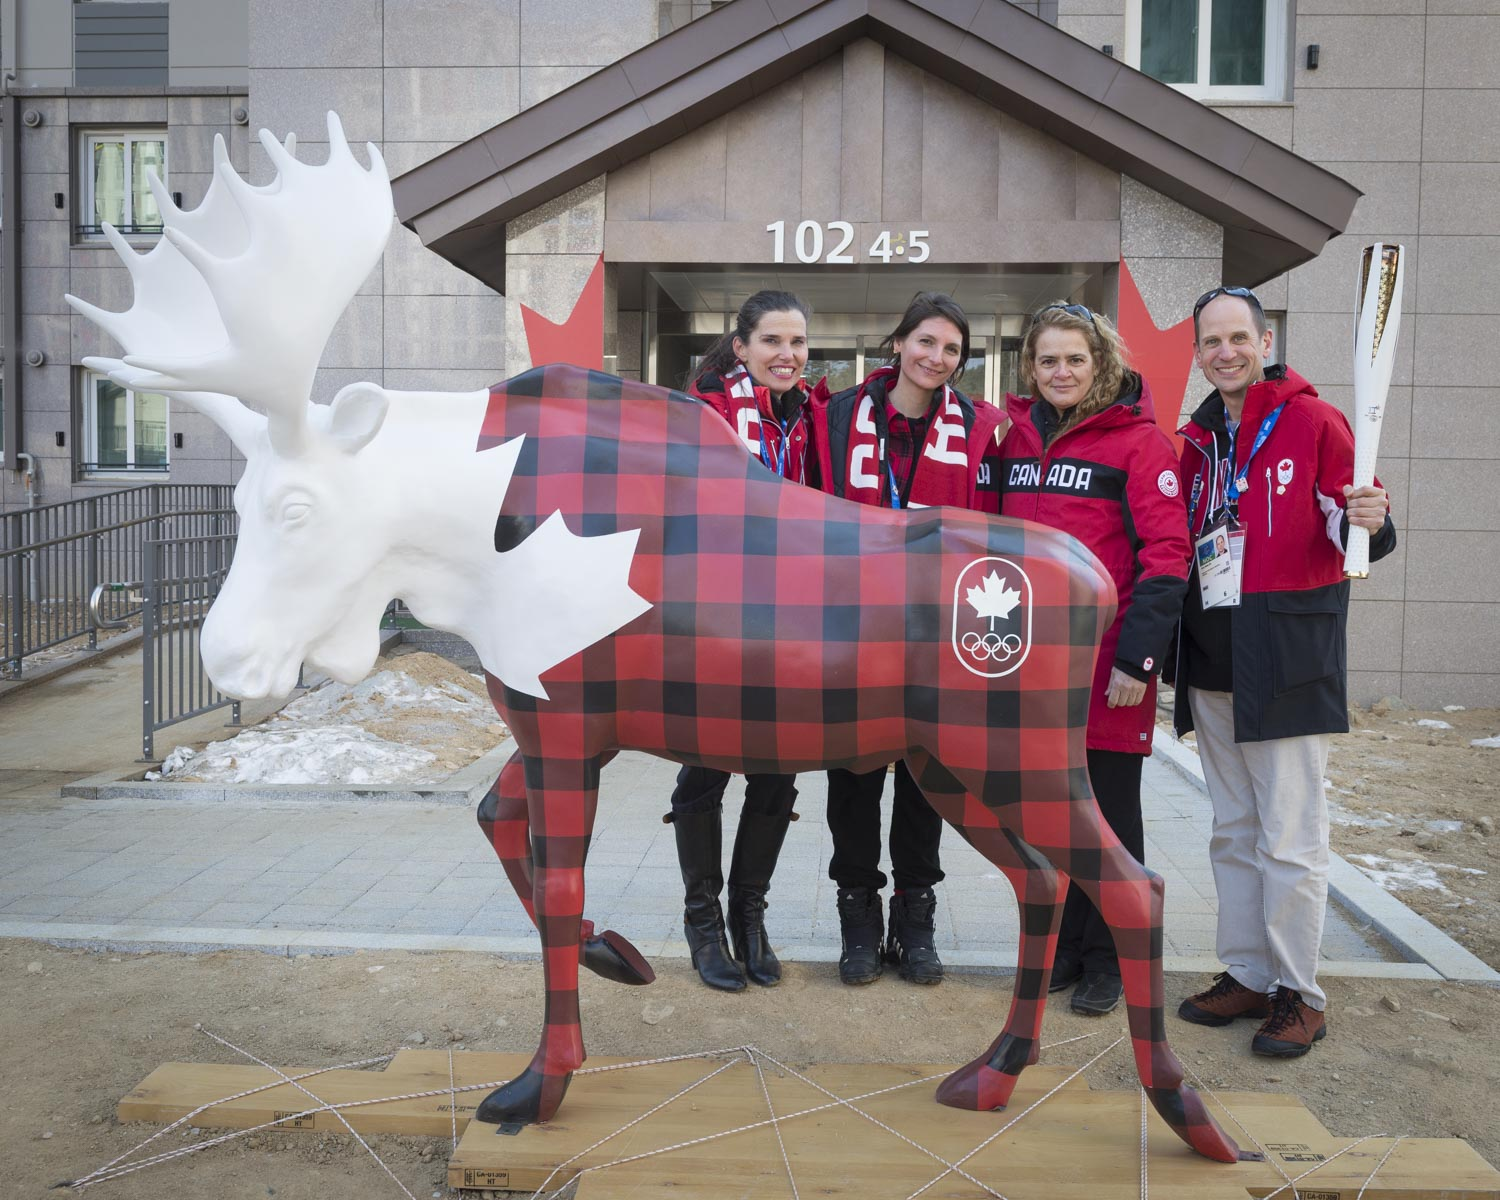 The Governor General, the Honourable Kirsty Duncan, Minister of Science and Minister of Sport and Persons with Disabilities, and Eric Walsh, Canadian Ambassador to Korea, visited the Athletes' Village in Mountain Cluster.